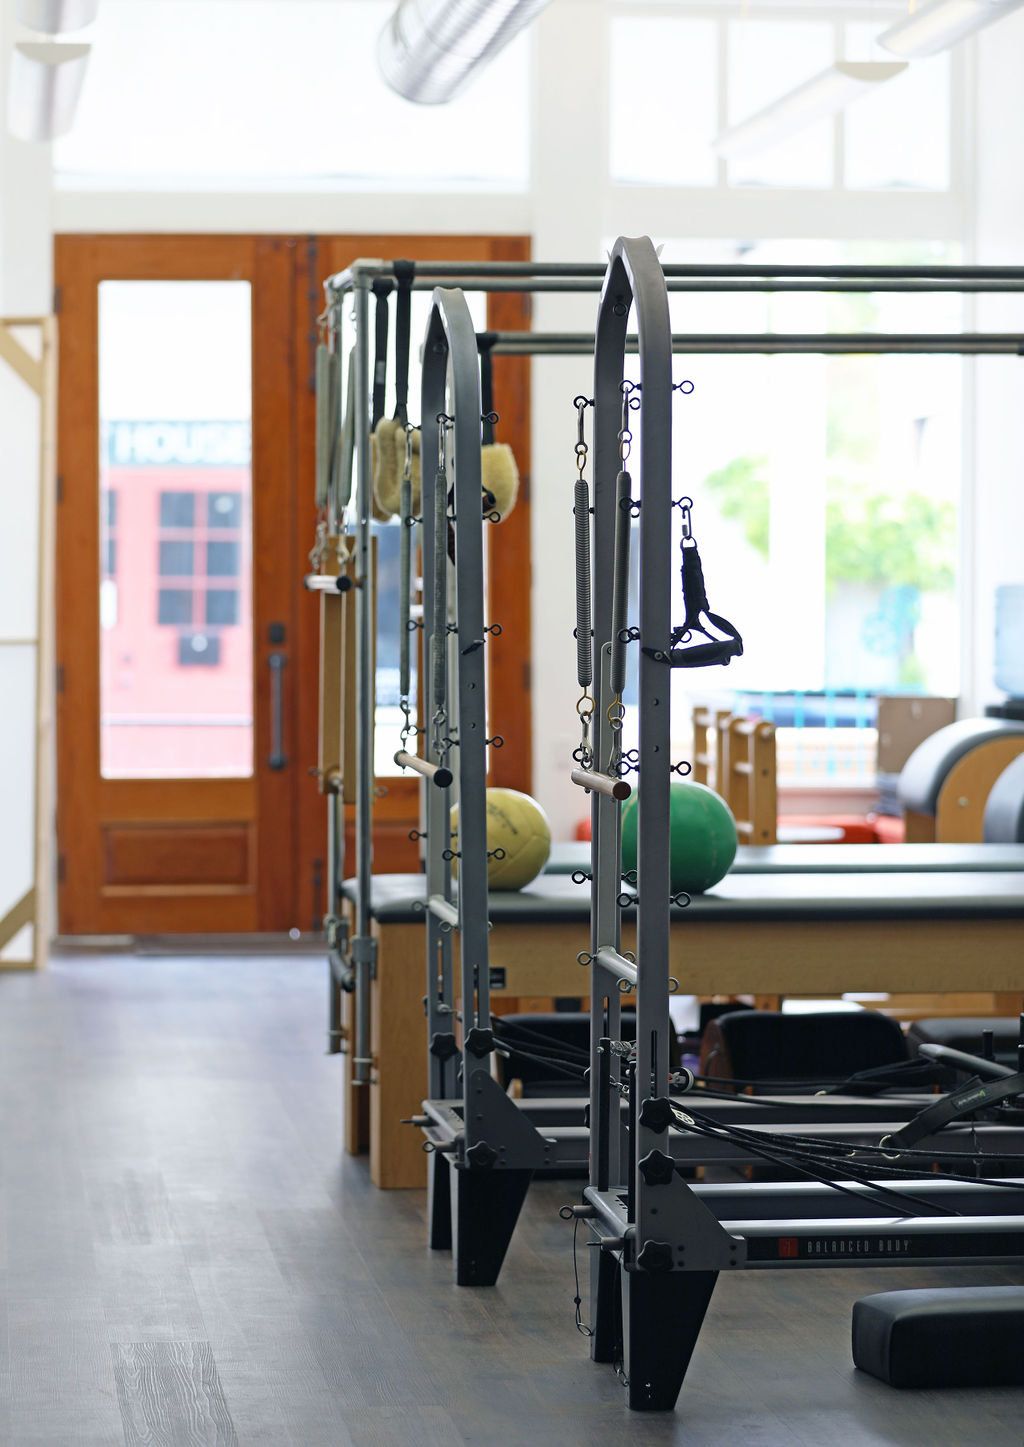 Small Group Pilates Reformer